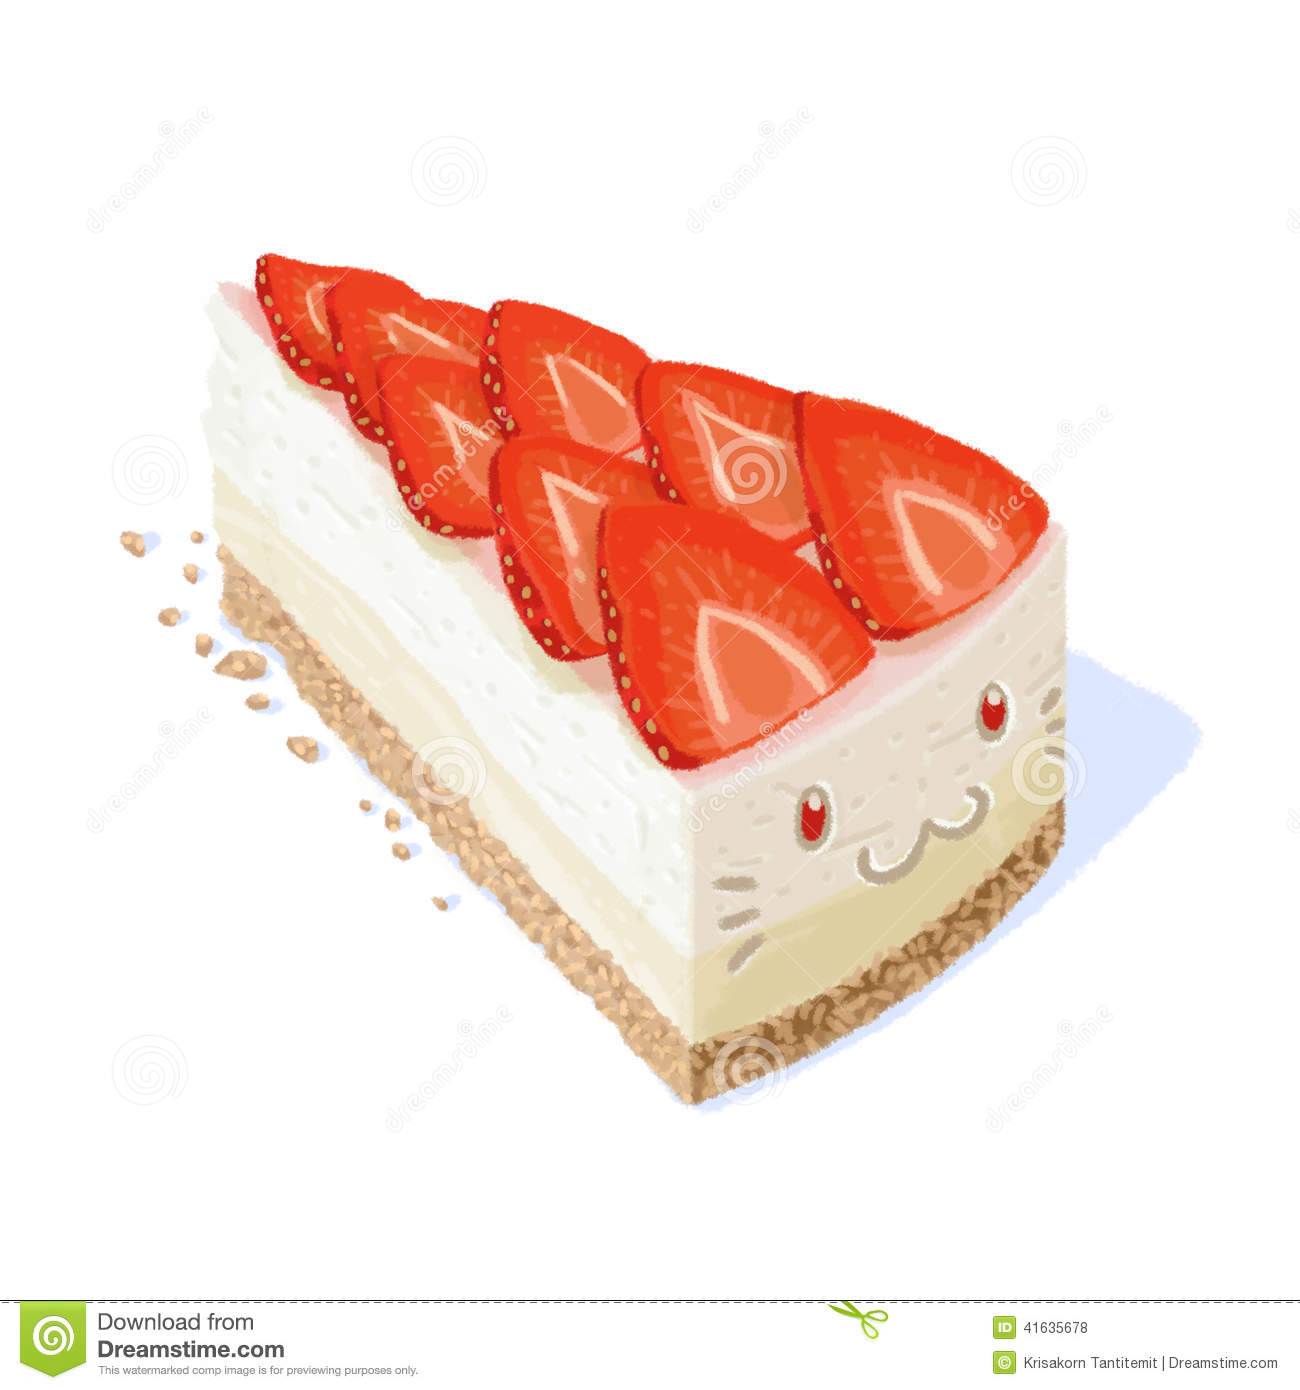 Strawberry cheesecake clipart 8 » Clipart Station.